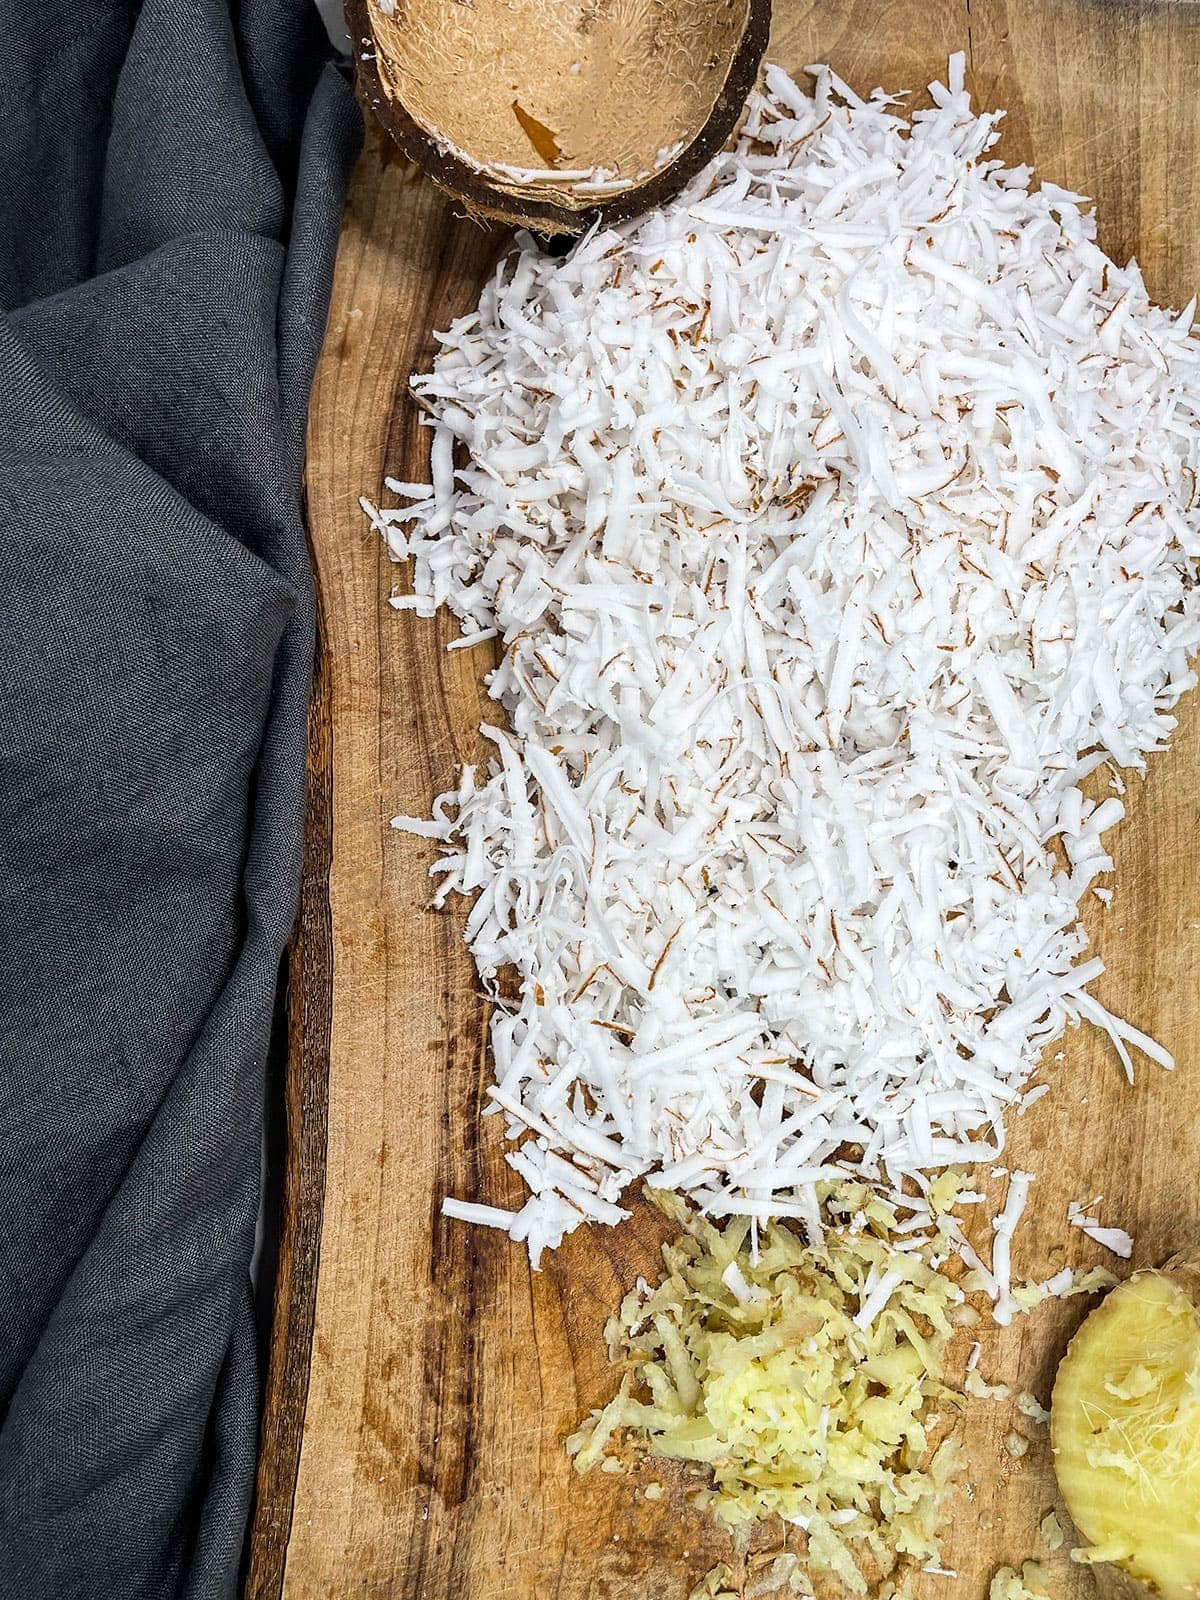 Grated coconut and ginger